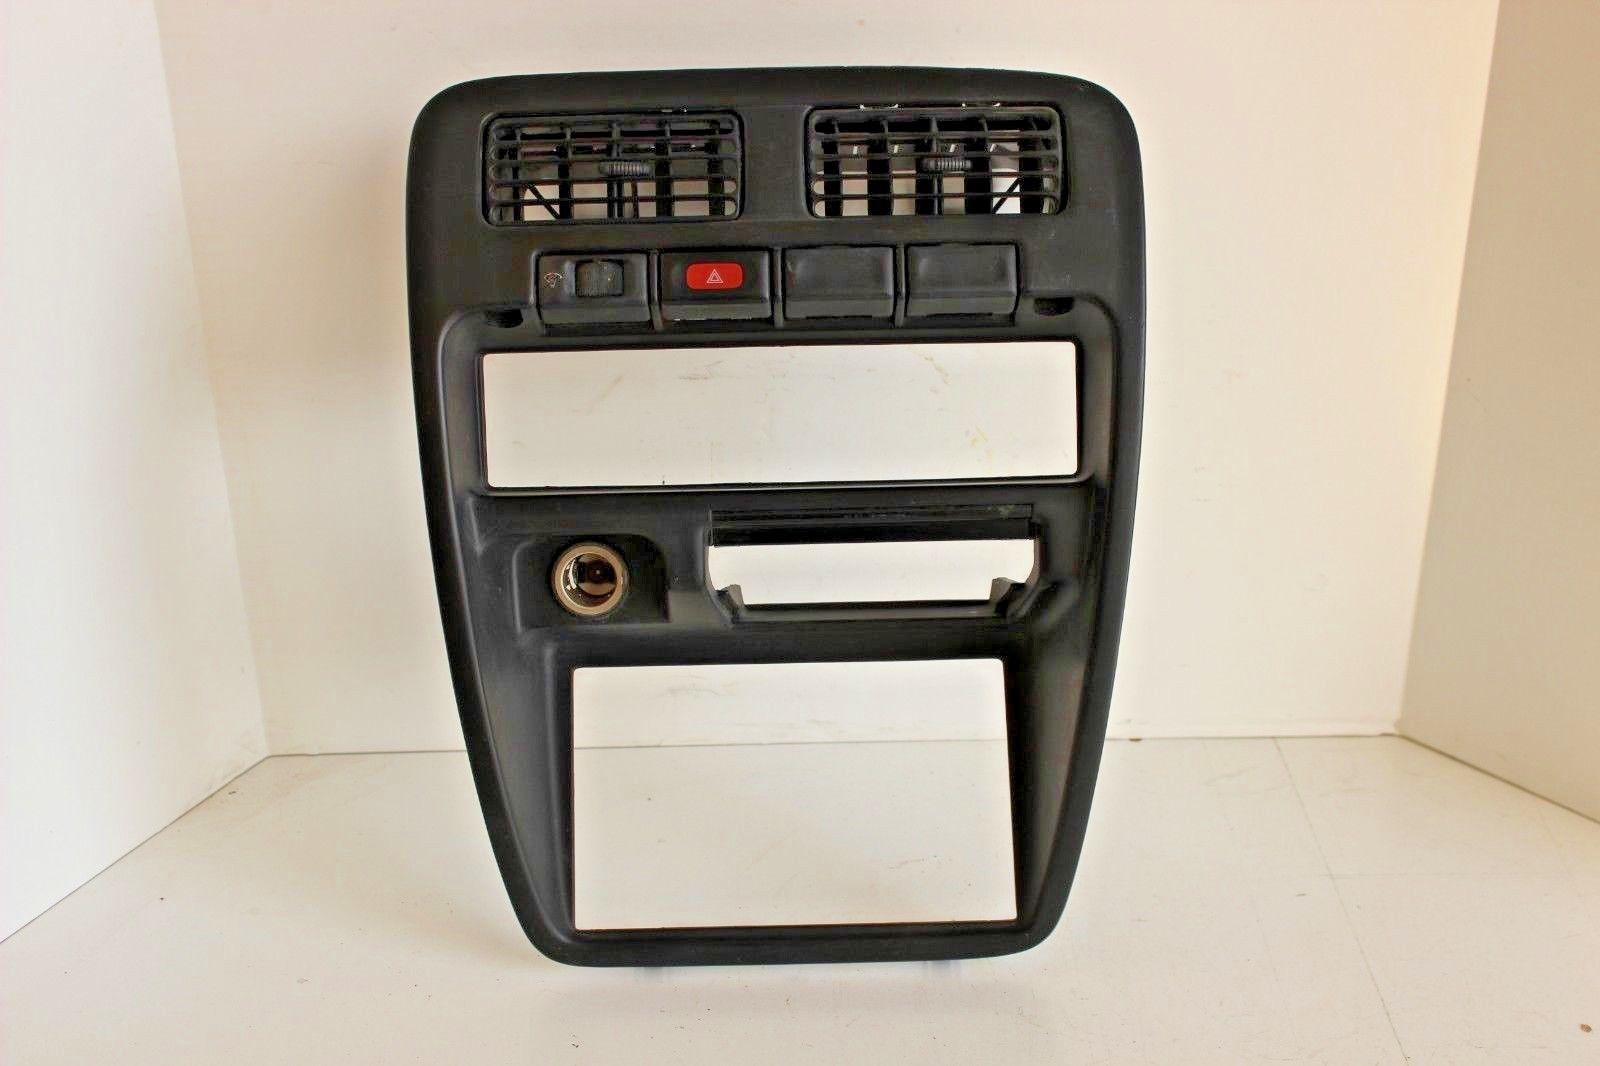 Downtown Import Auto And Truck Recyclers 1994 1995 1996 1997 Nissan Hardbody D21 Radio Dash Faceplate Bezel Trim Oem